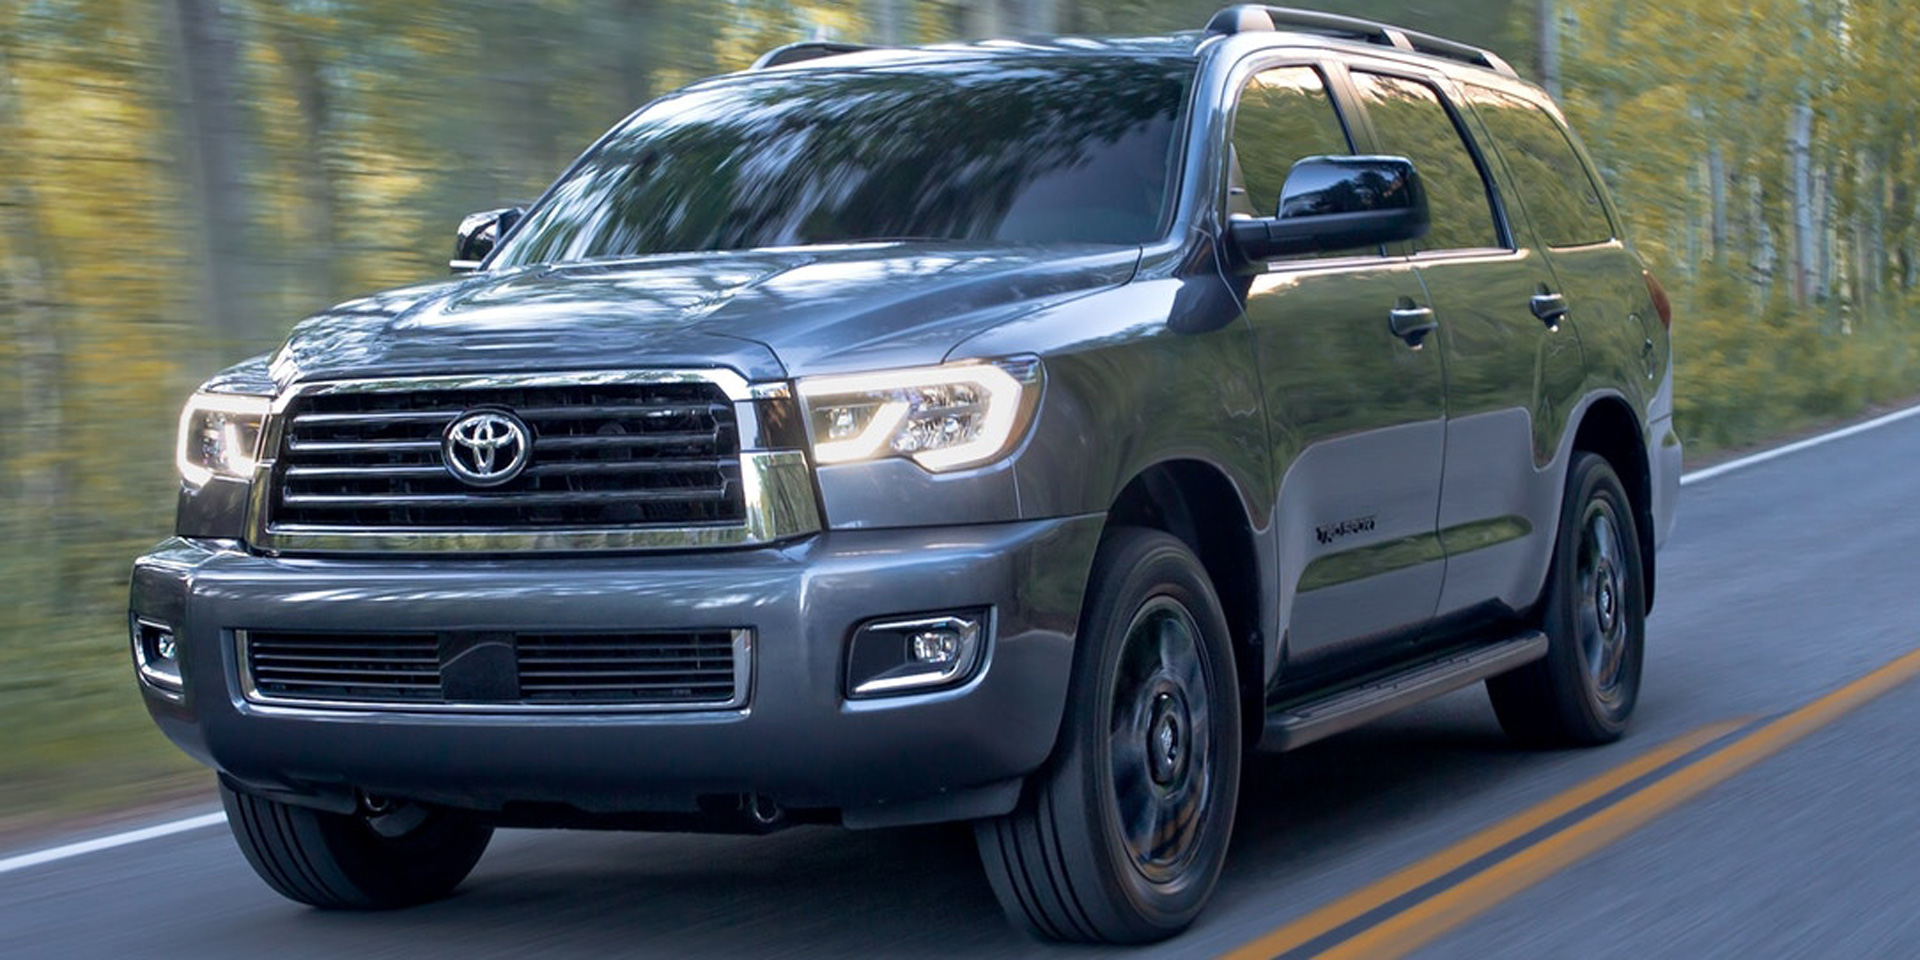 2018 toyota sequoia vehicles on display chicago auto show. Black Bedroom Furniture Sets. Home Design Ideas